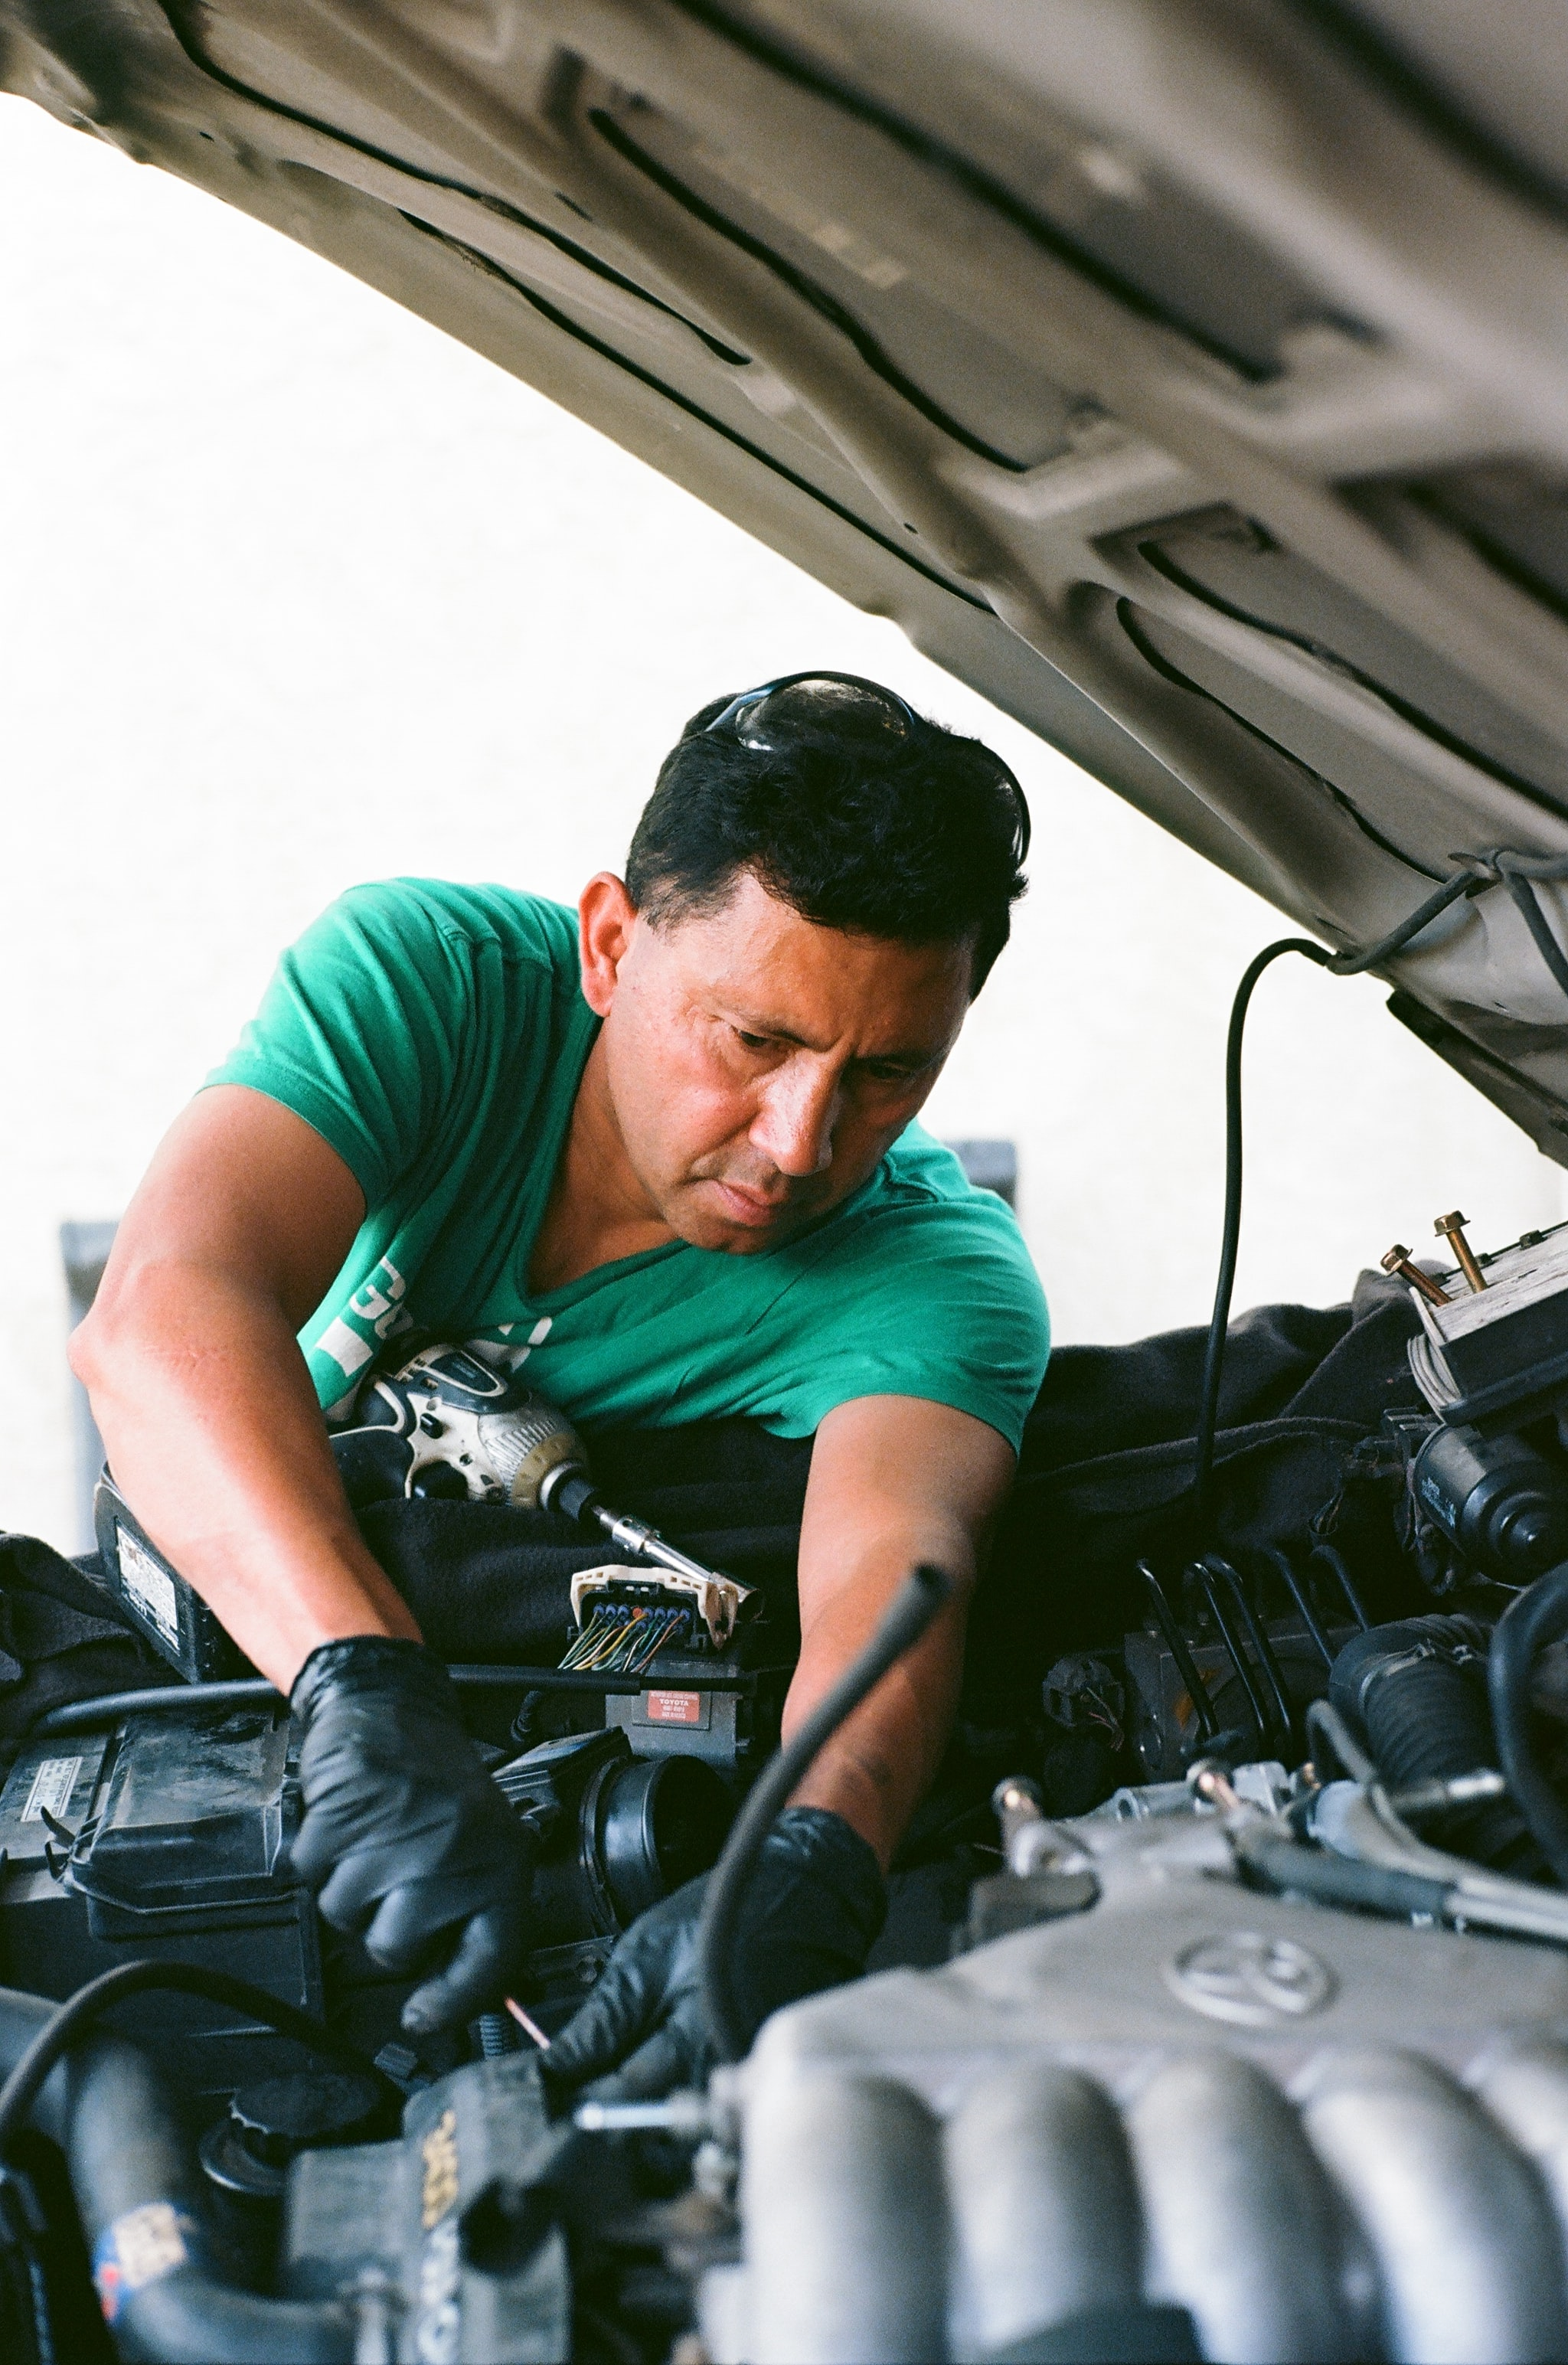 man repairing vehicle engine